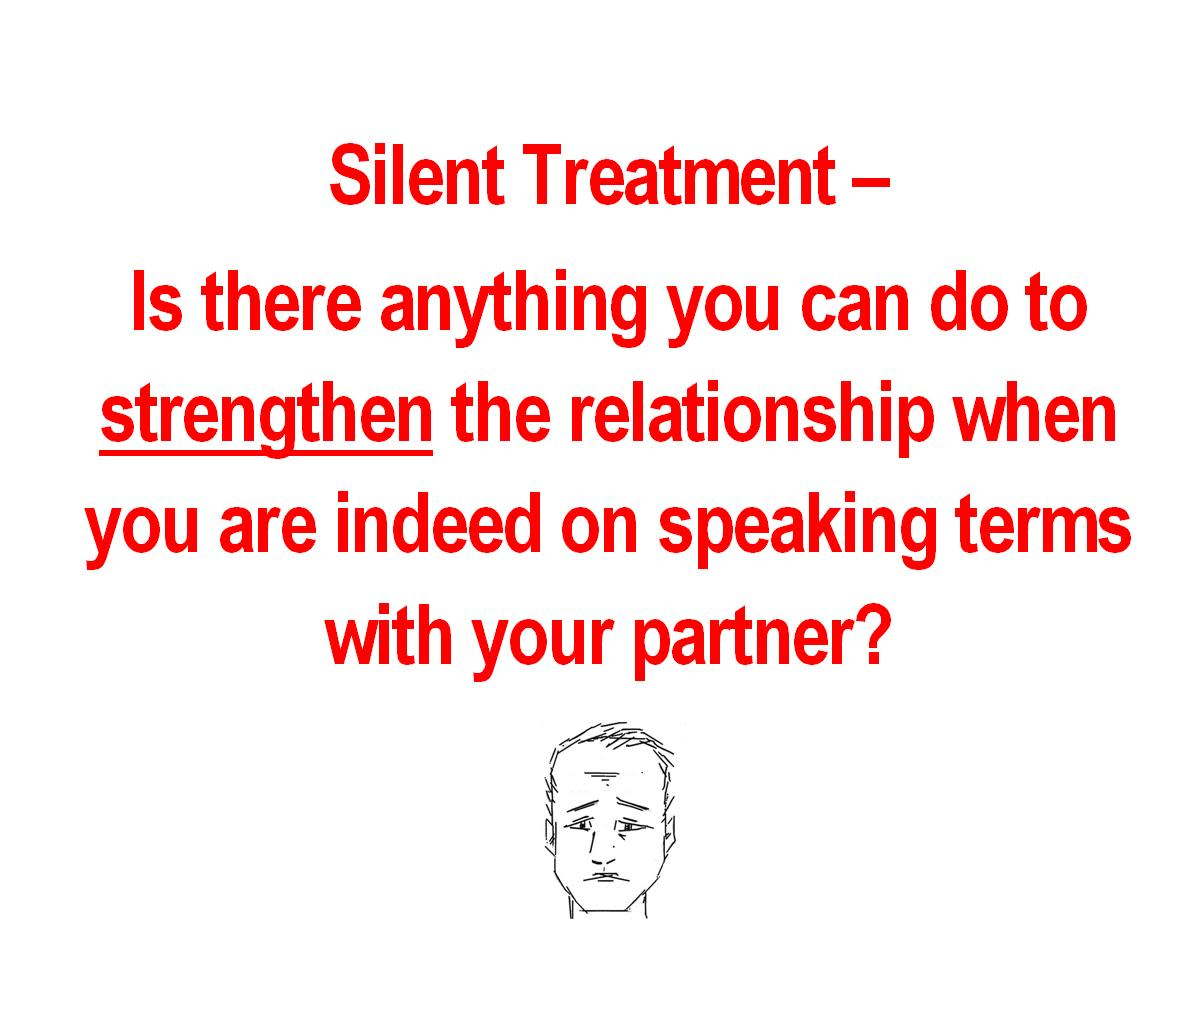 Silent Treatment - Click here to look at how to strengthen the relationship when you are back on speaking terms.